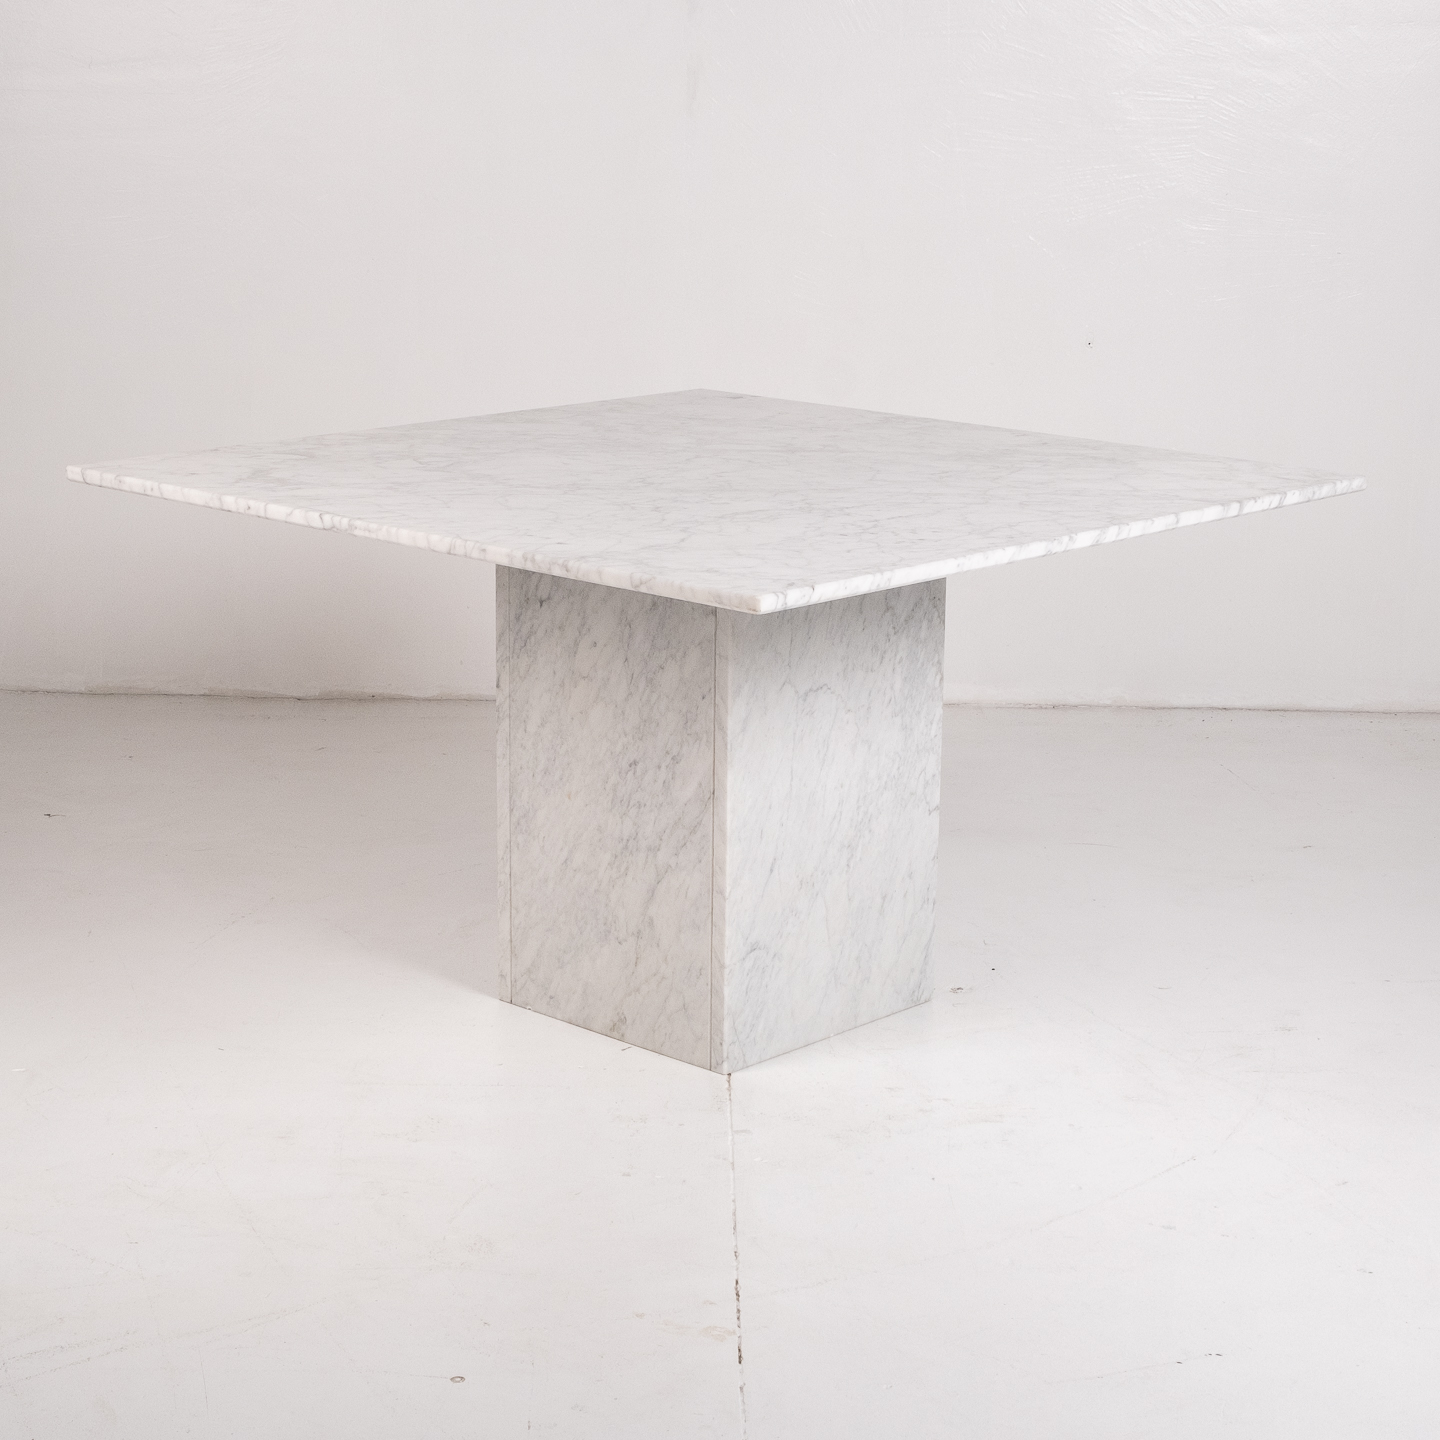 Square Dining Table In White Carrara Marble, Italy, 1980s 611